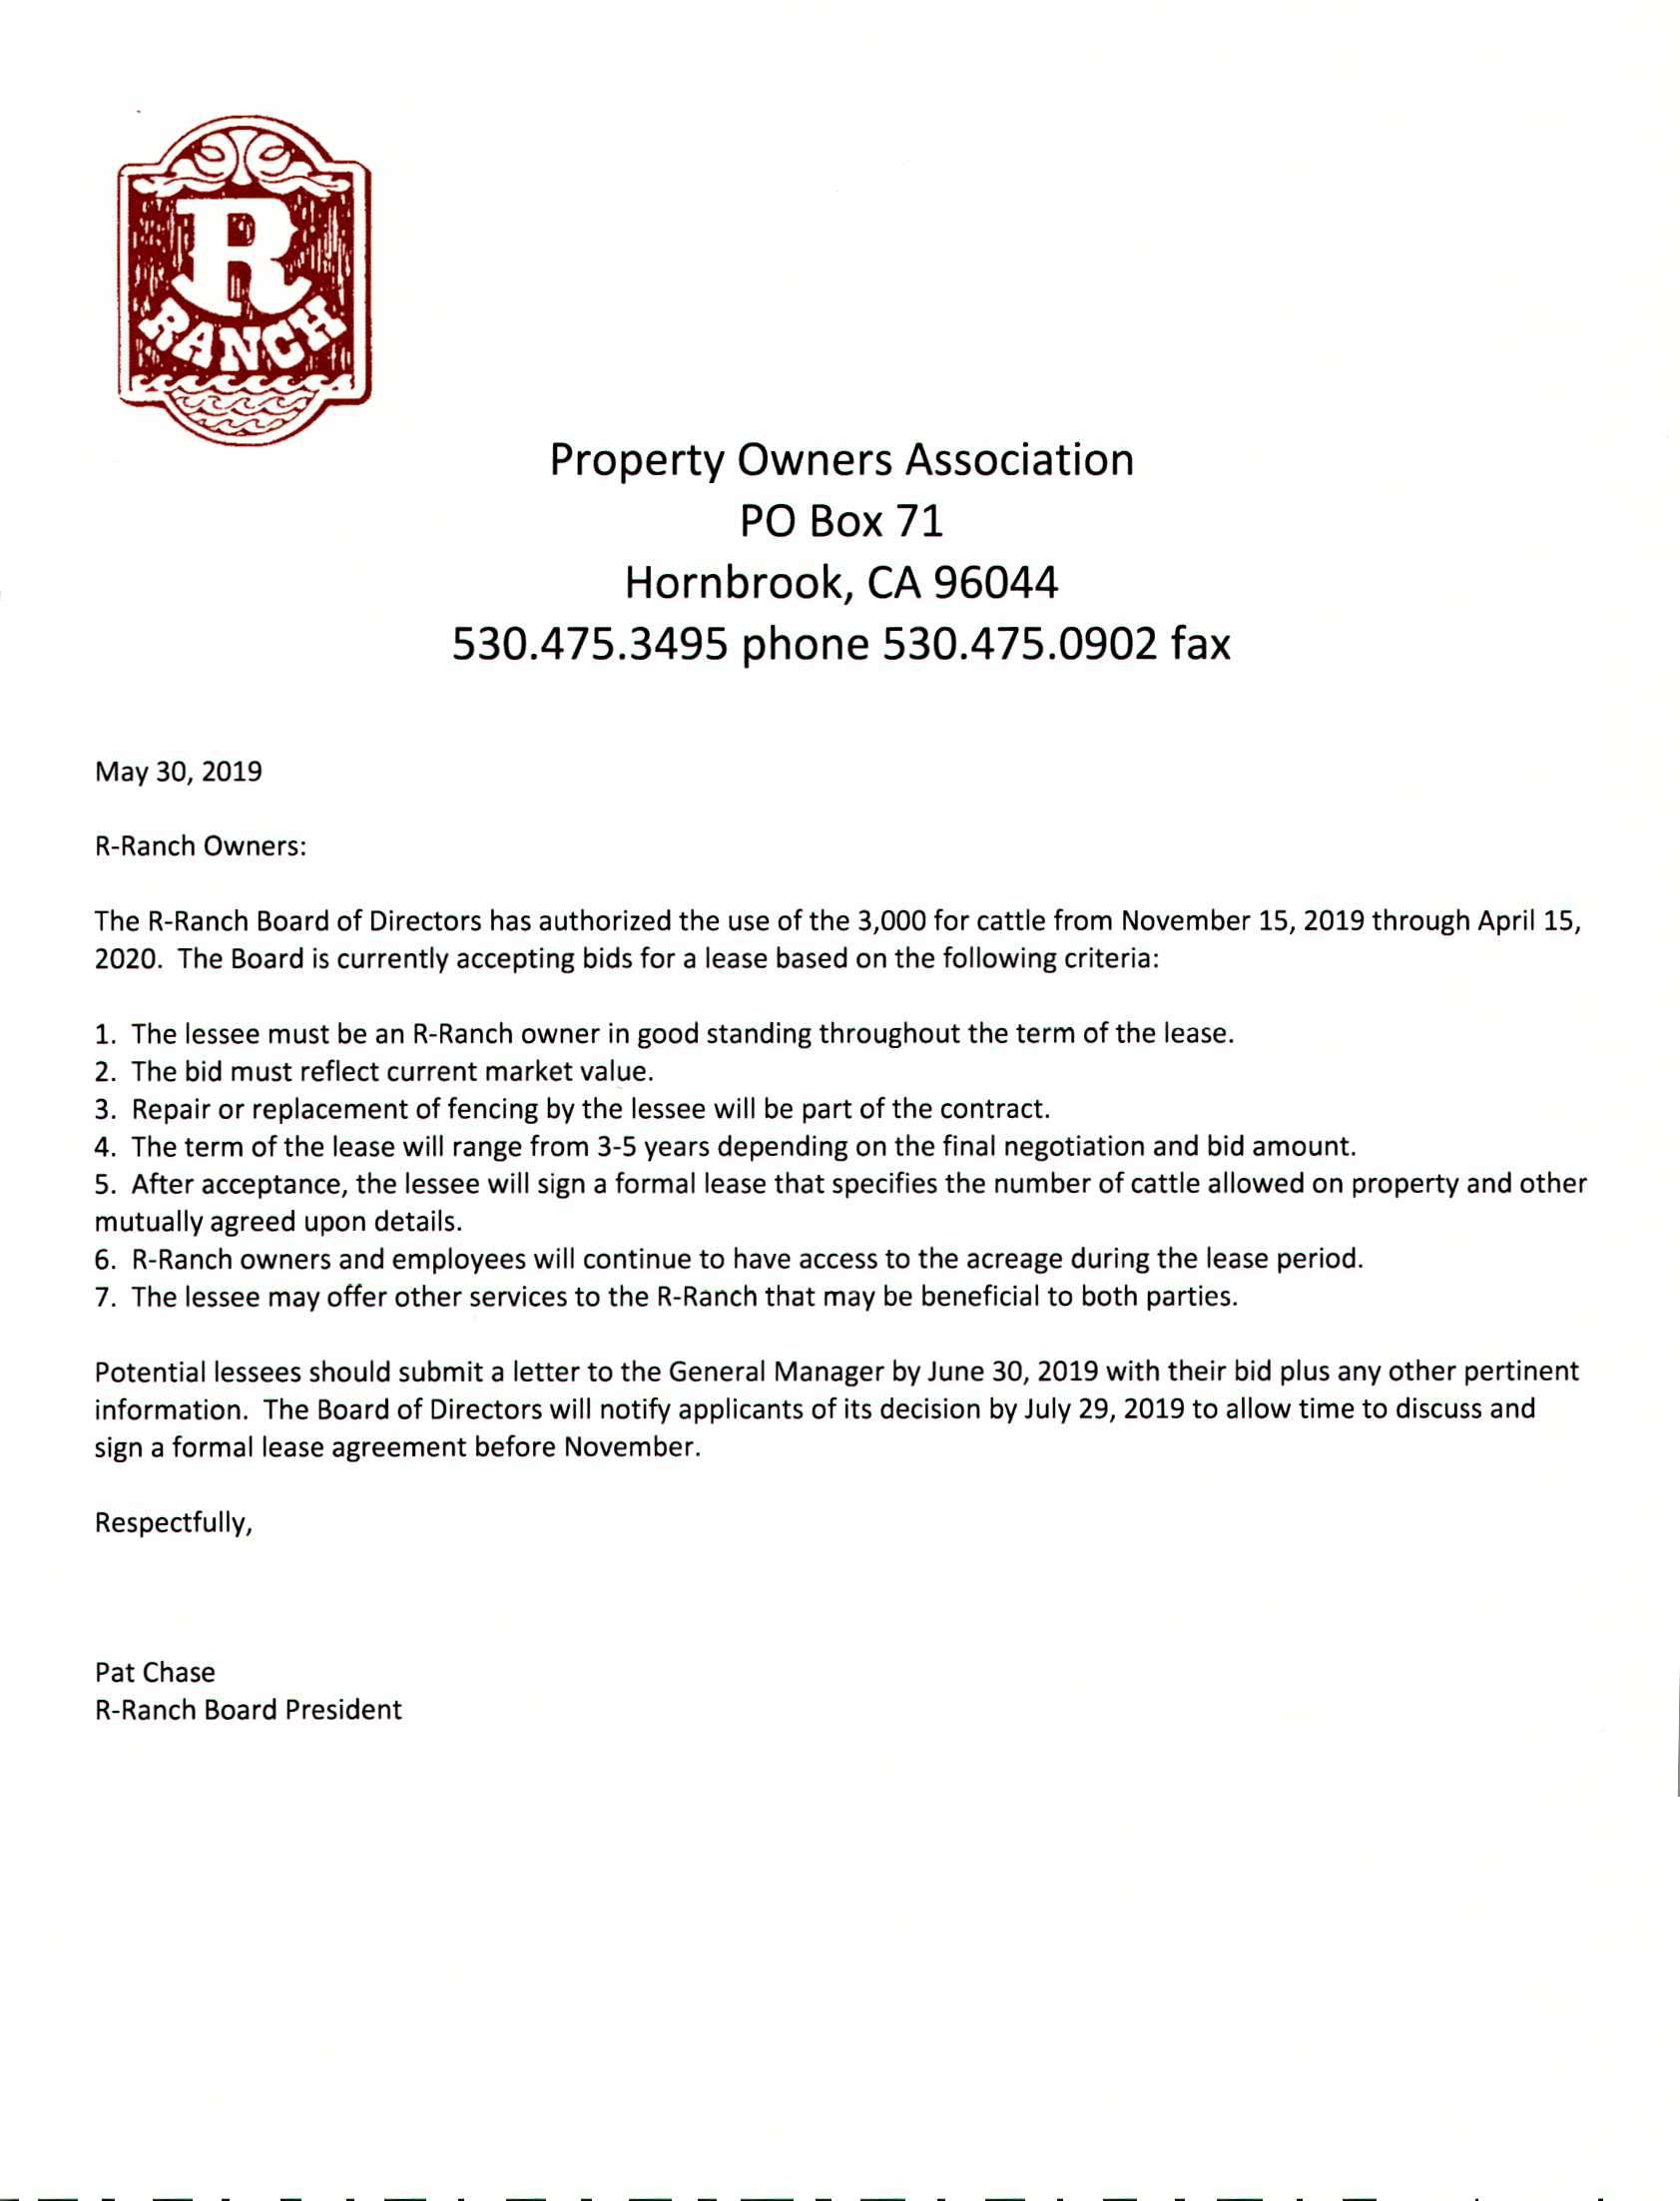 Cattle Lease Of 3000 For Owners R Ranch Own A Piece Of